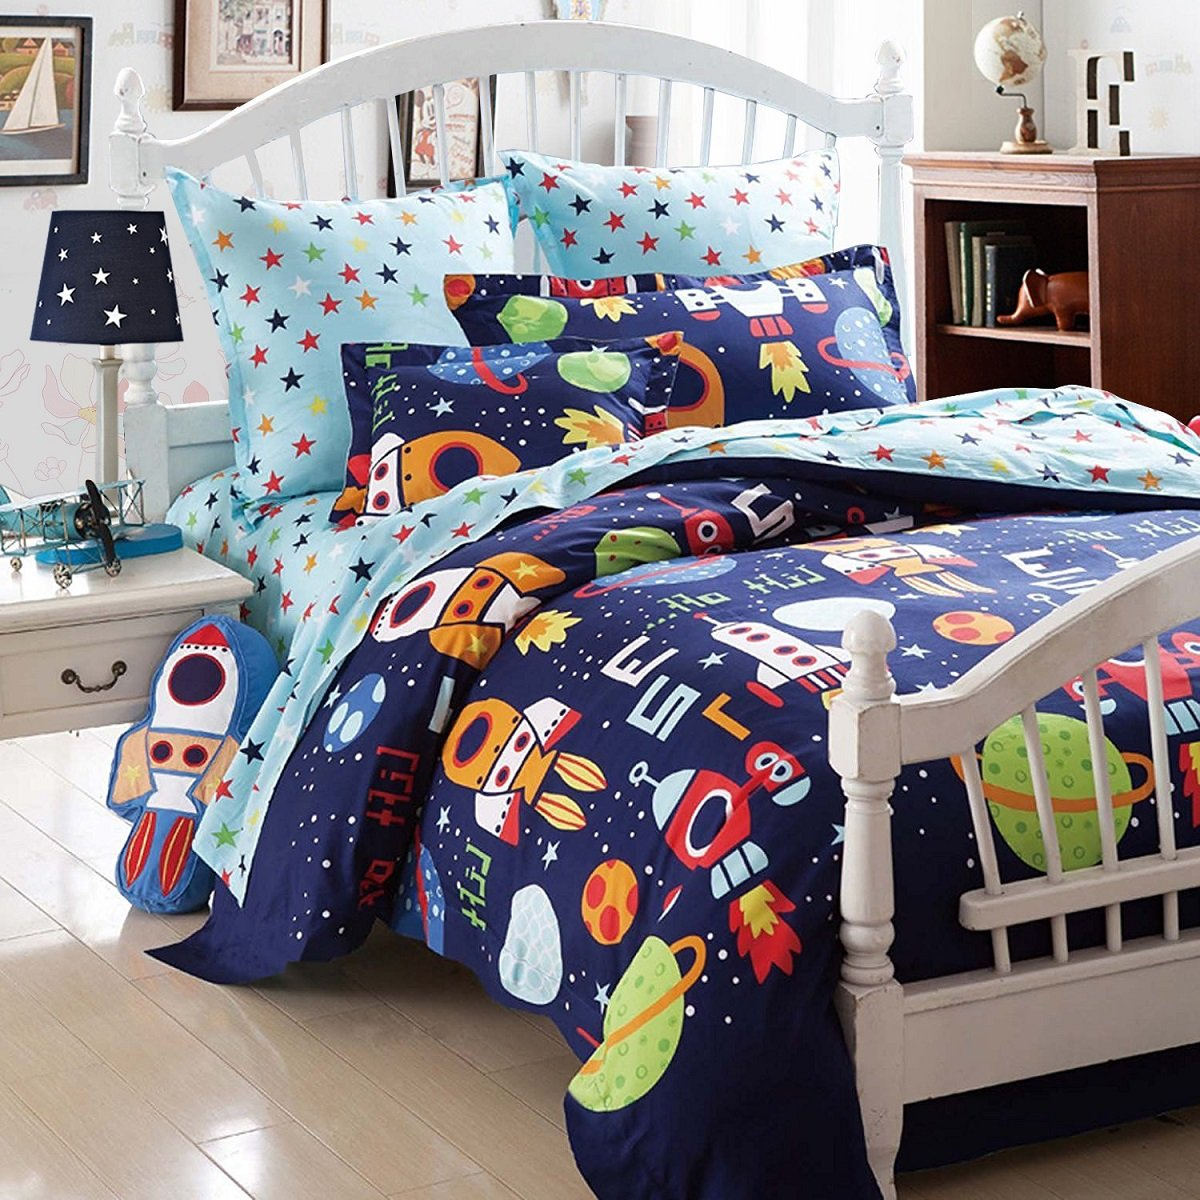 Boys Bedding Sets Space Adventure Bedding Set 100 Cotton Kids Teen Bedding Rockets Hypoallergenic Duvet Cover Set Cal King Size 3Pcs (Sheets Sold Separately) - Brandream